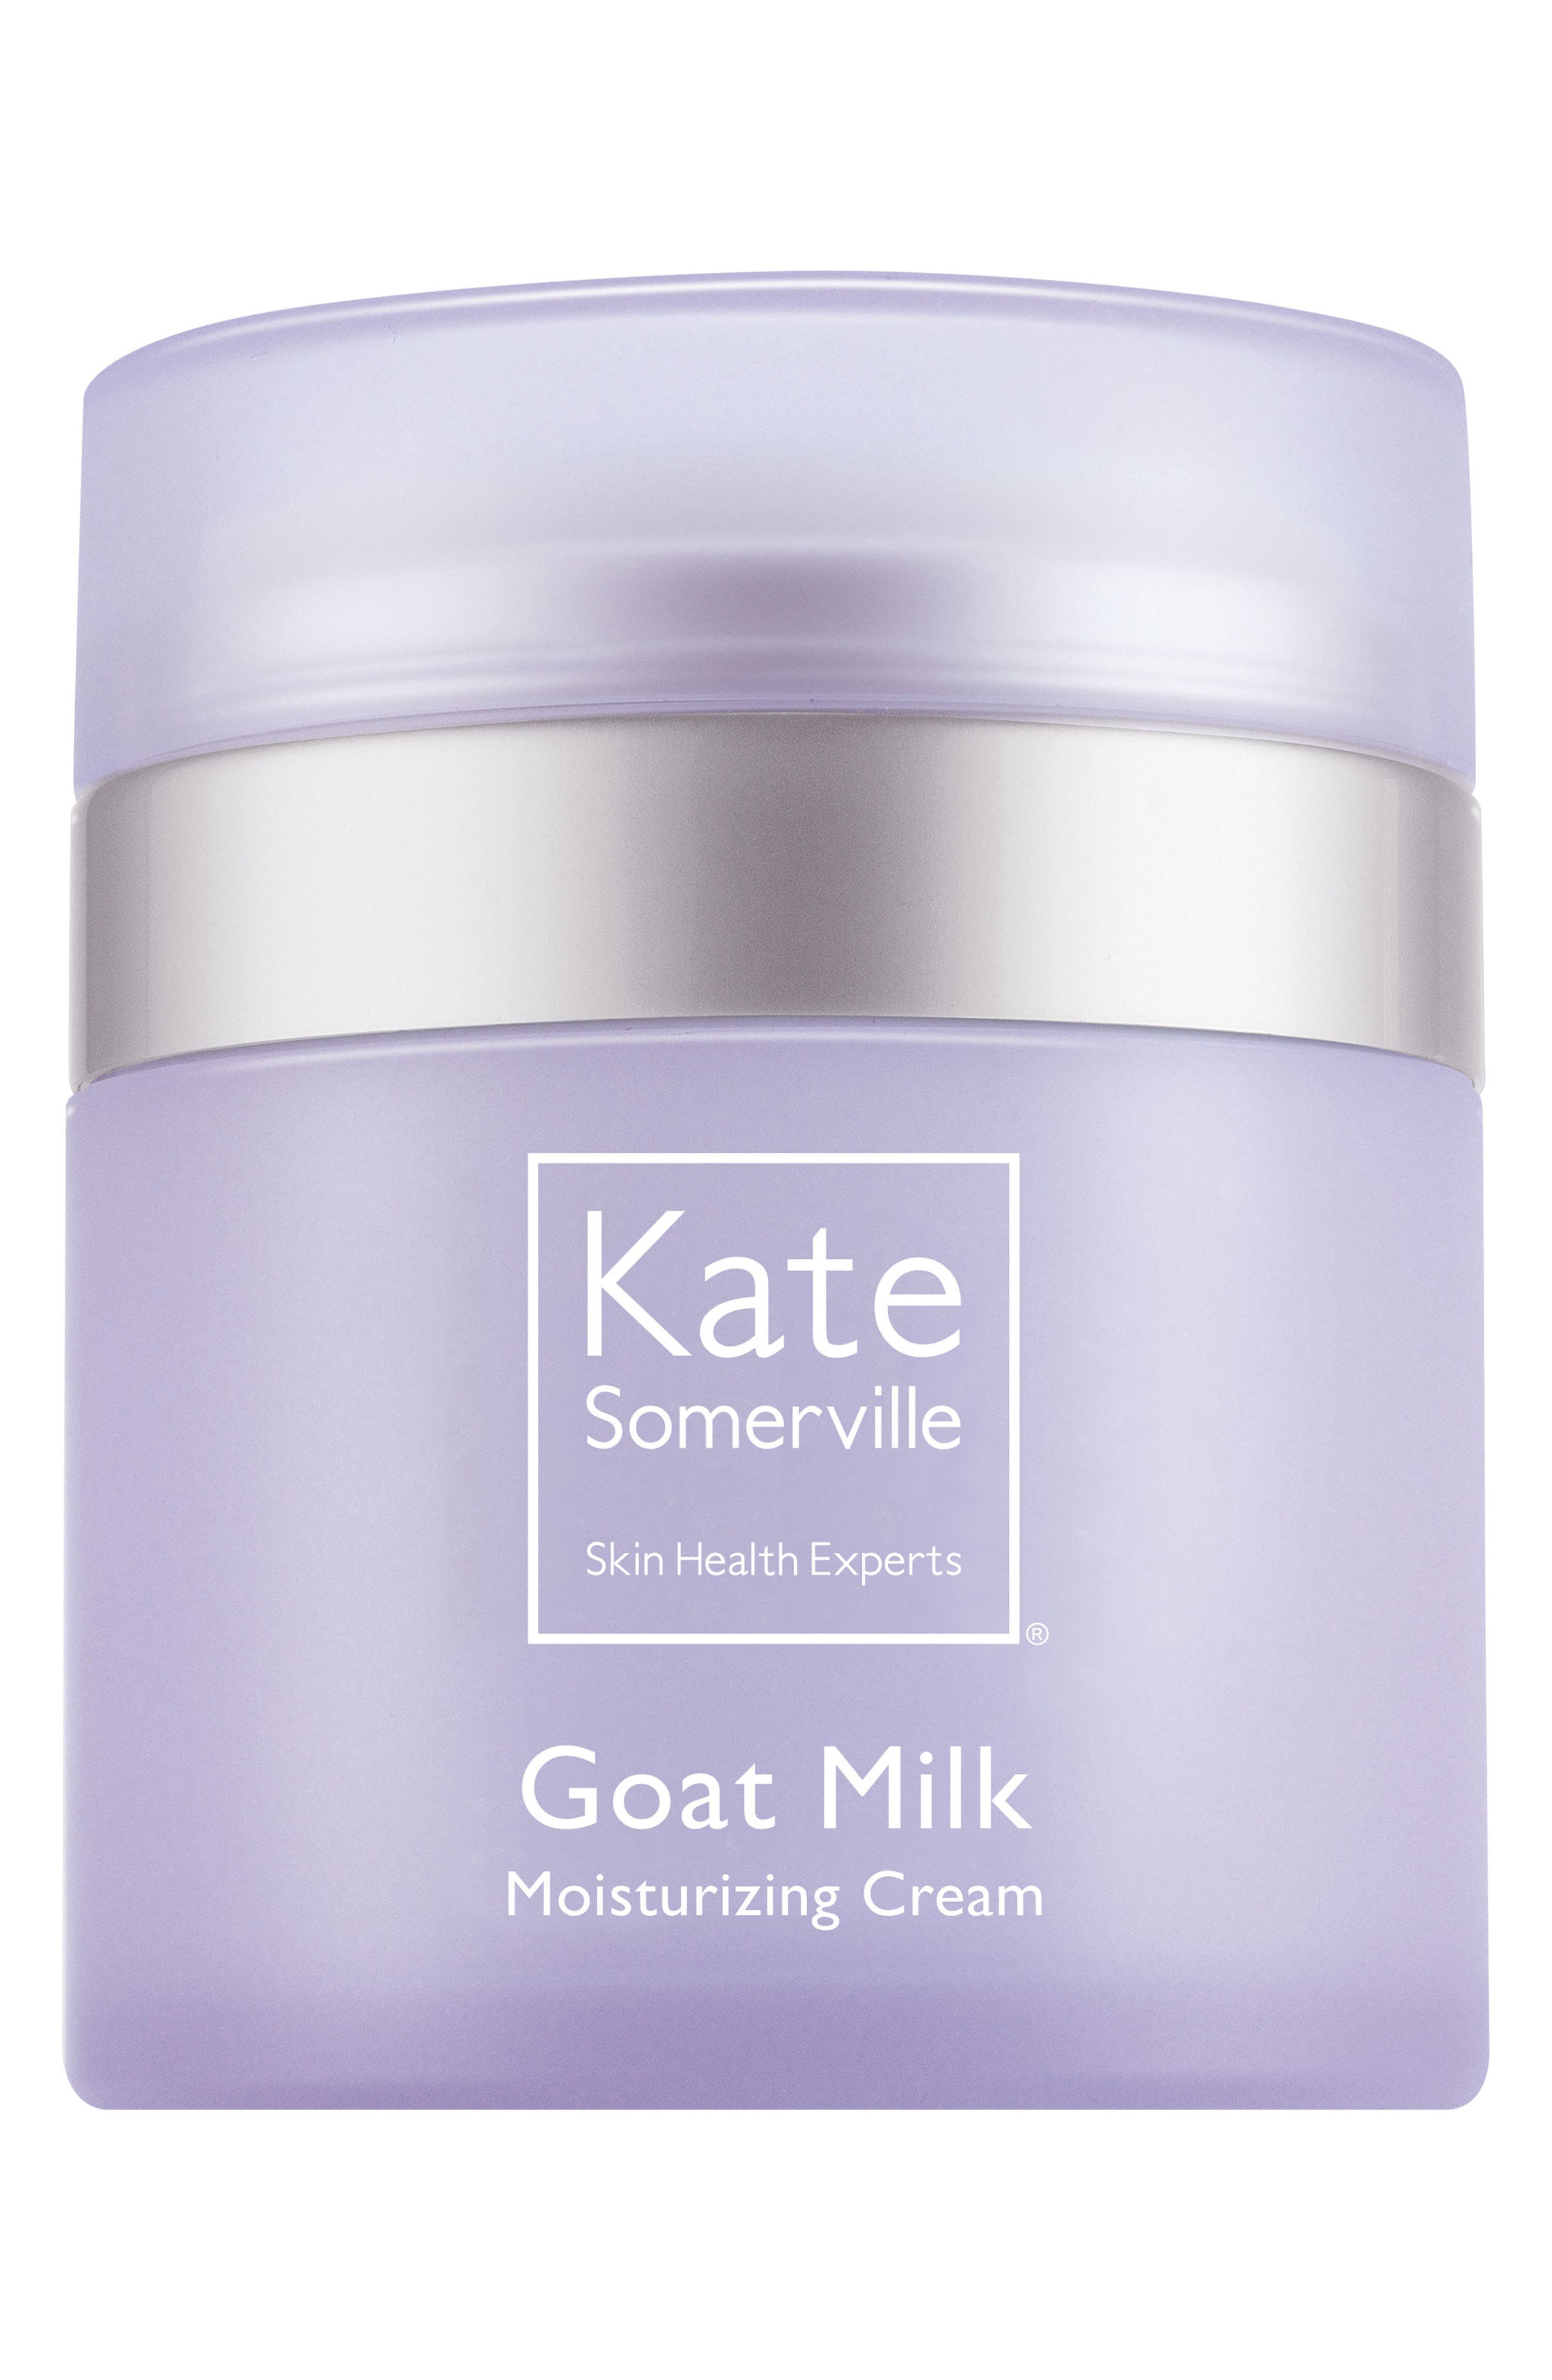 Kate Somerville® Goat Milk Moisturizing Cream